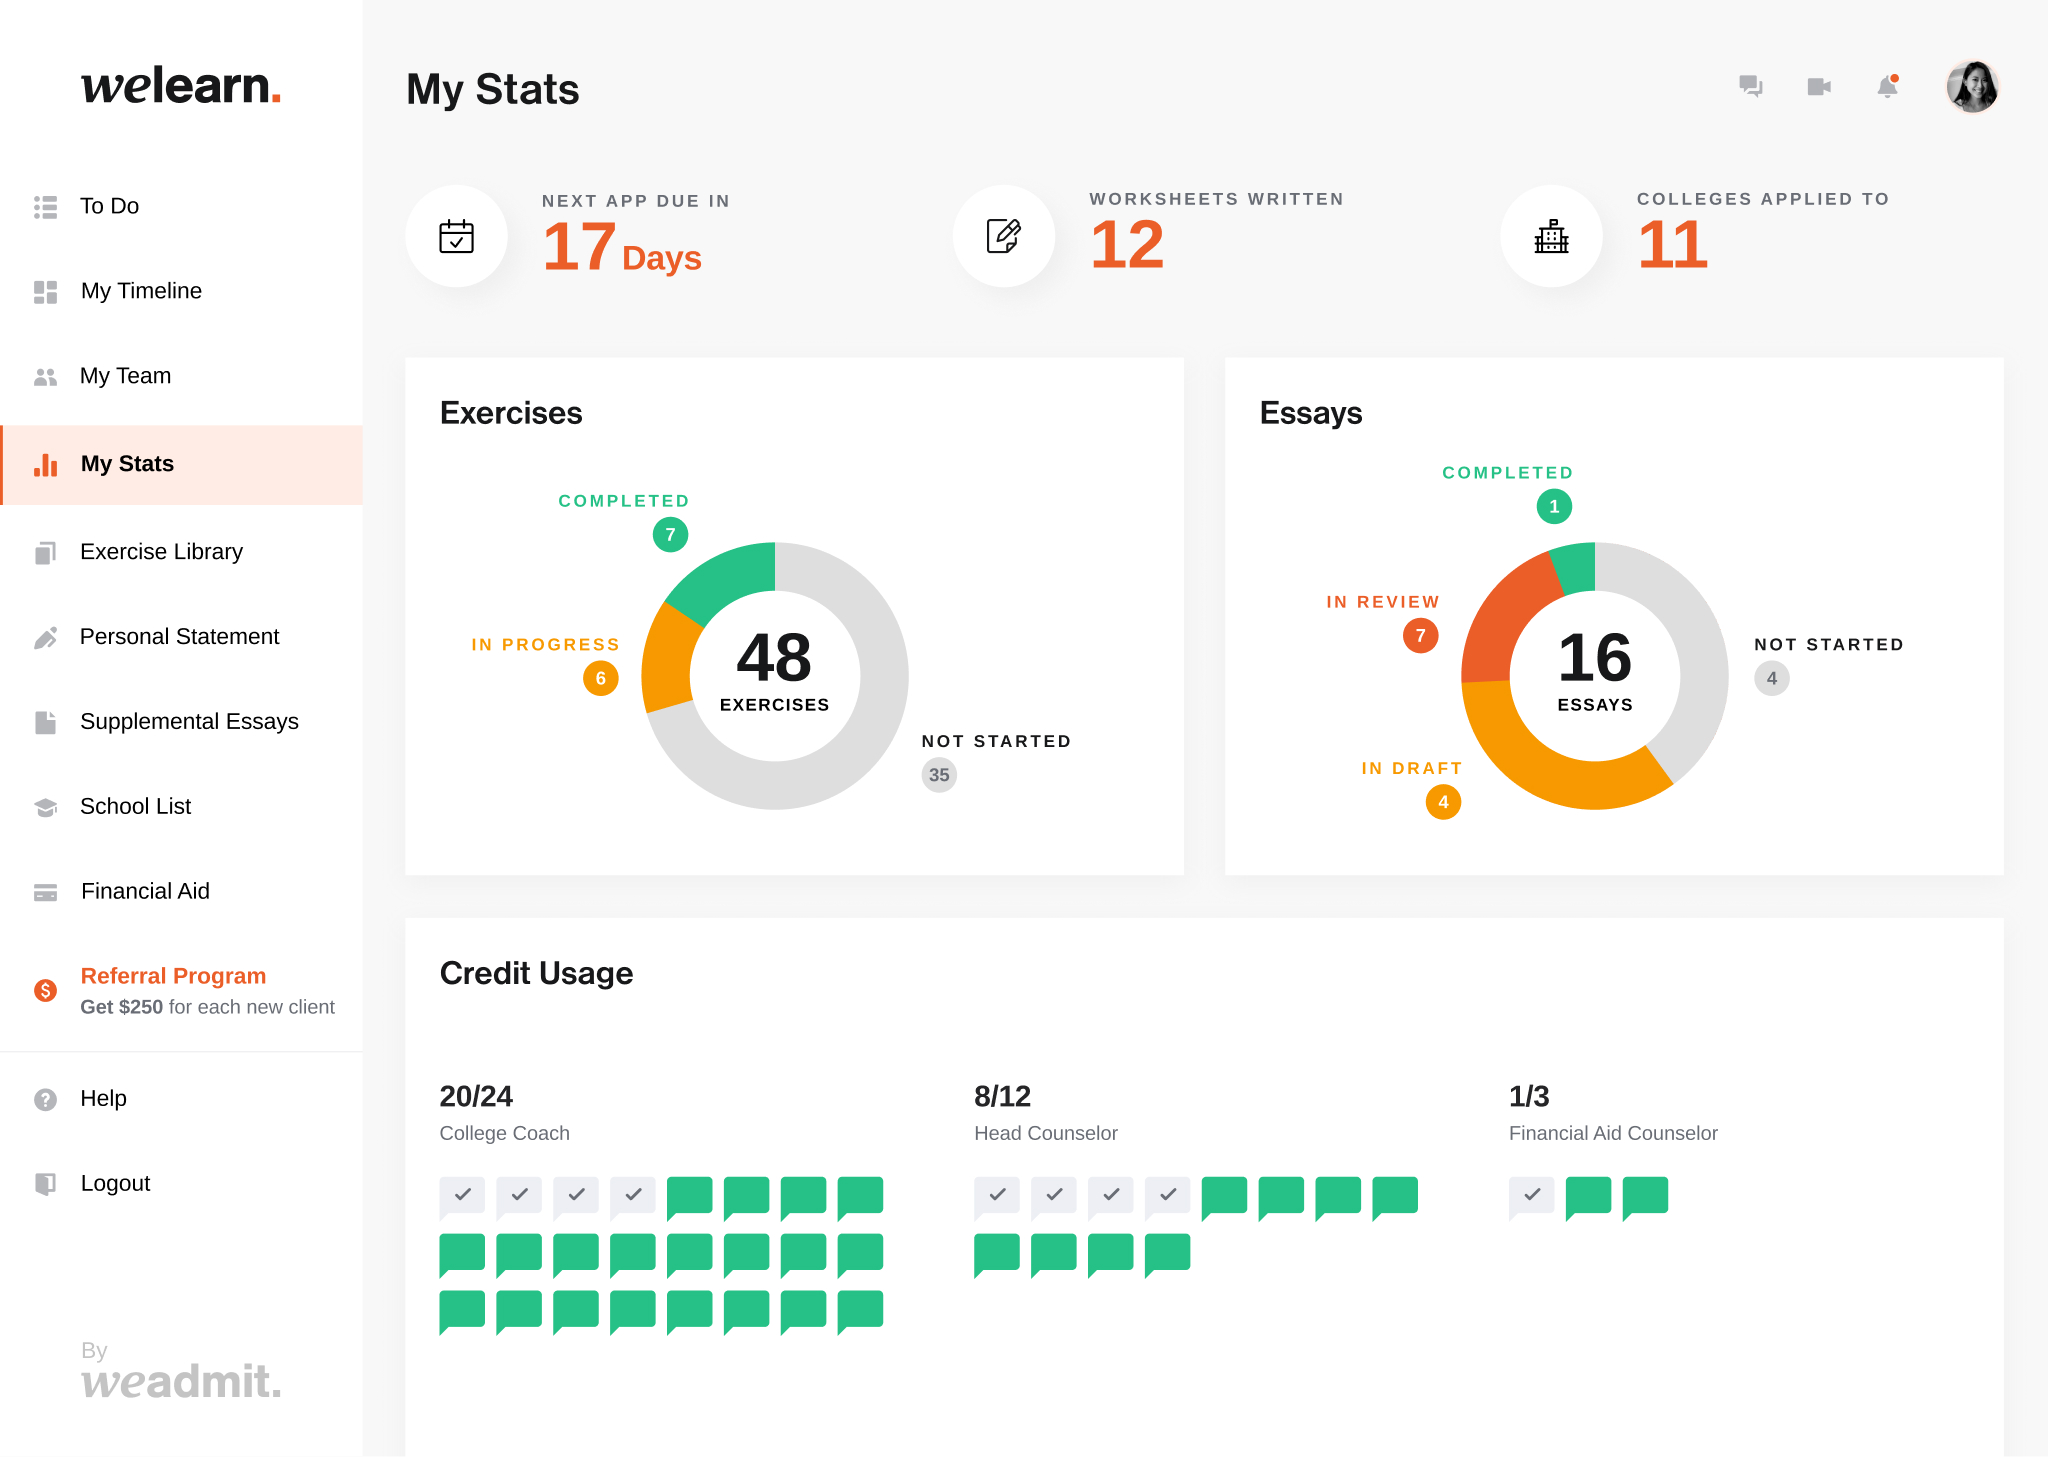 dashboard for parents to track college counseling stats such as exercises, essays, and colleges applied to